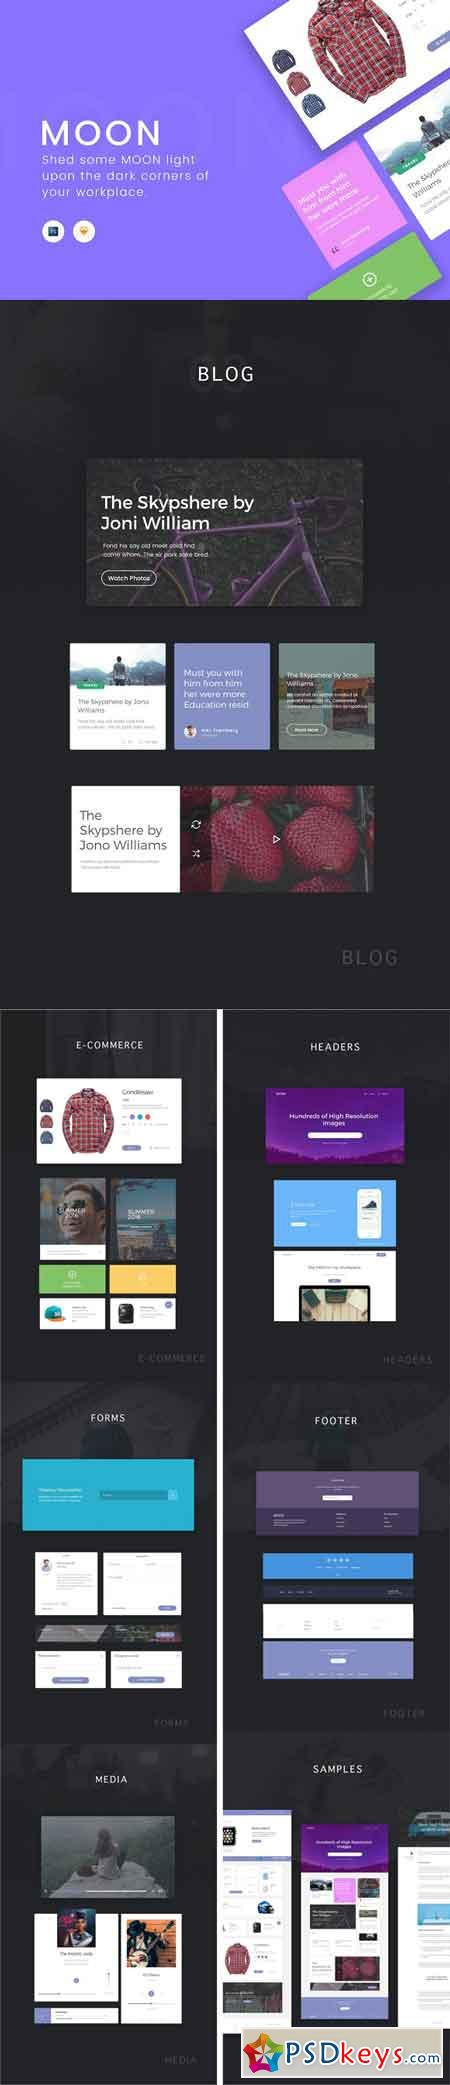 Moon UI Kit 947009